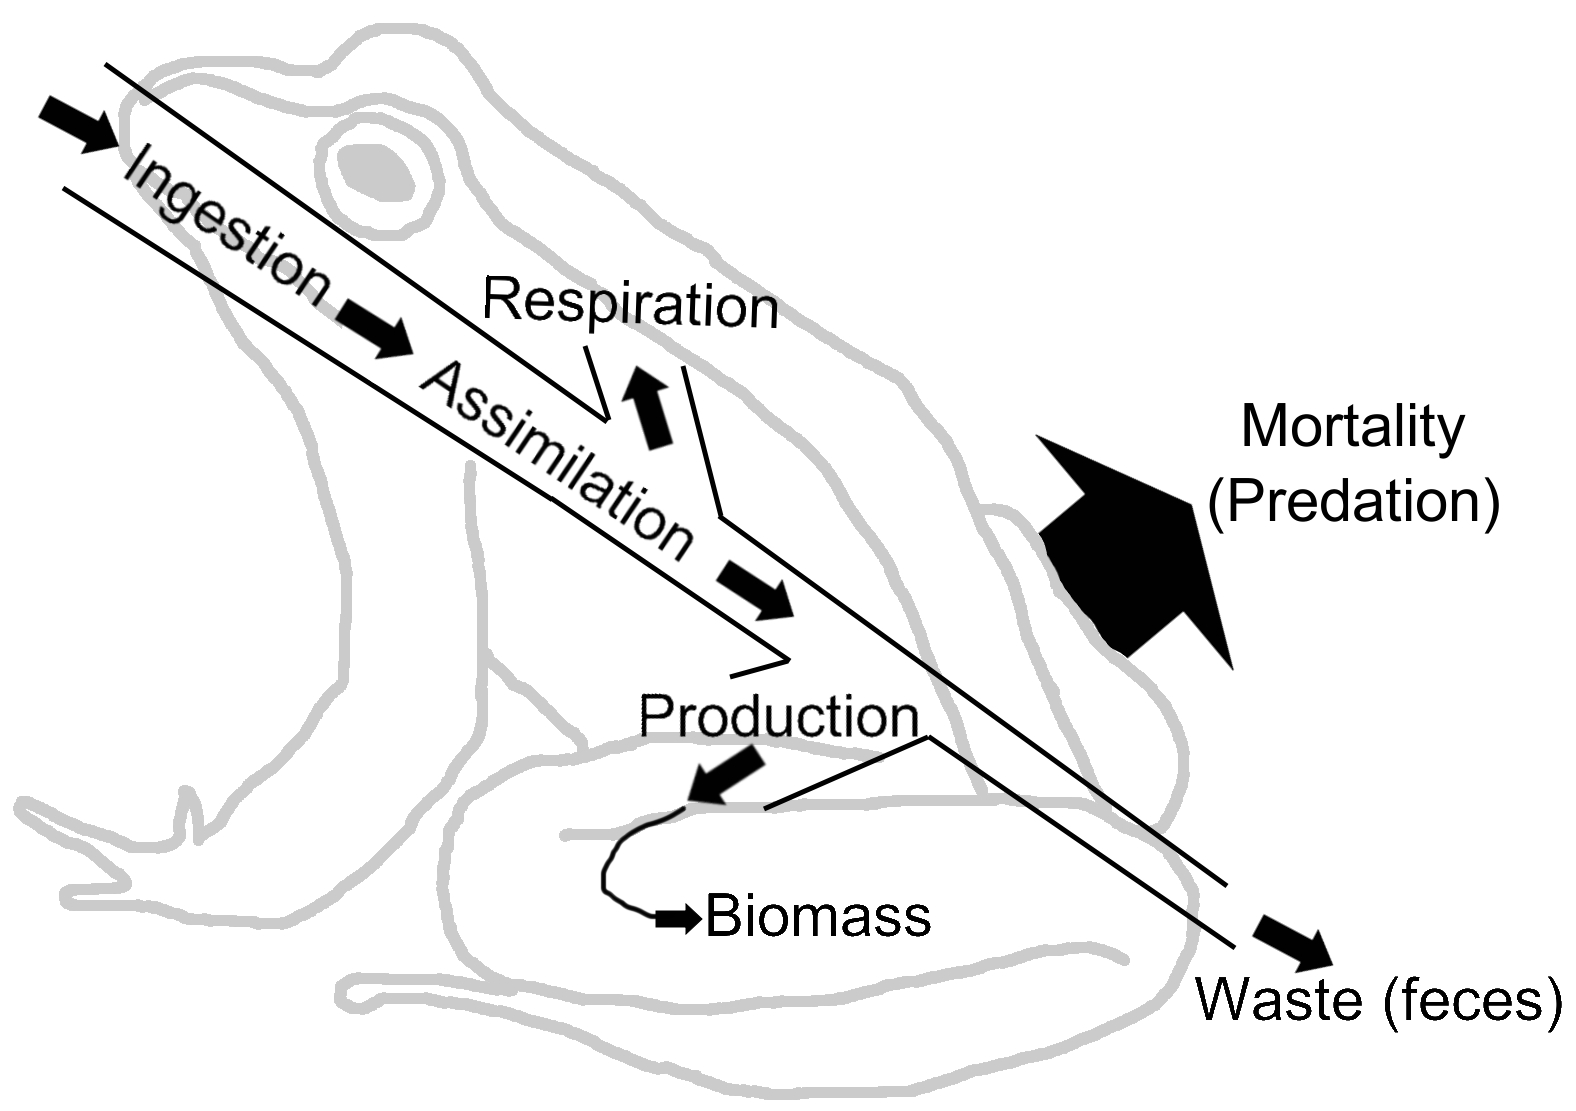 Flow Chart Parts: Energy flow (ecology) - Wikipedia,Chart